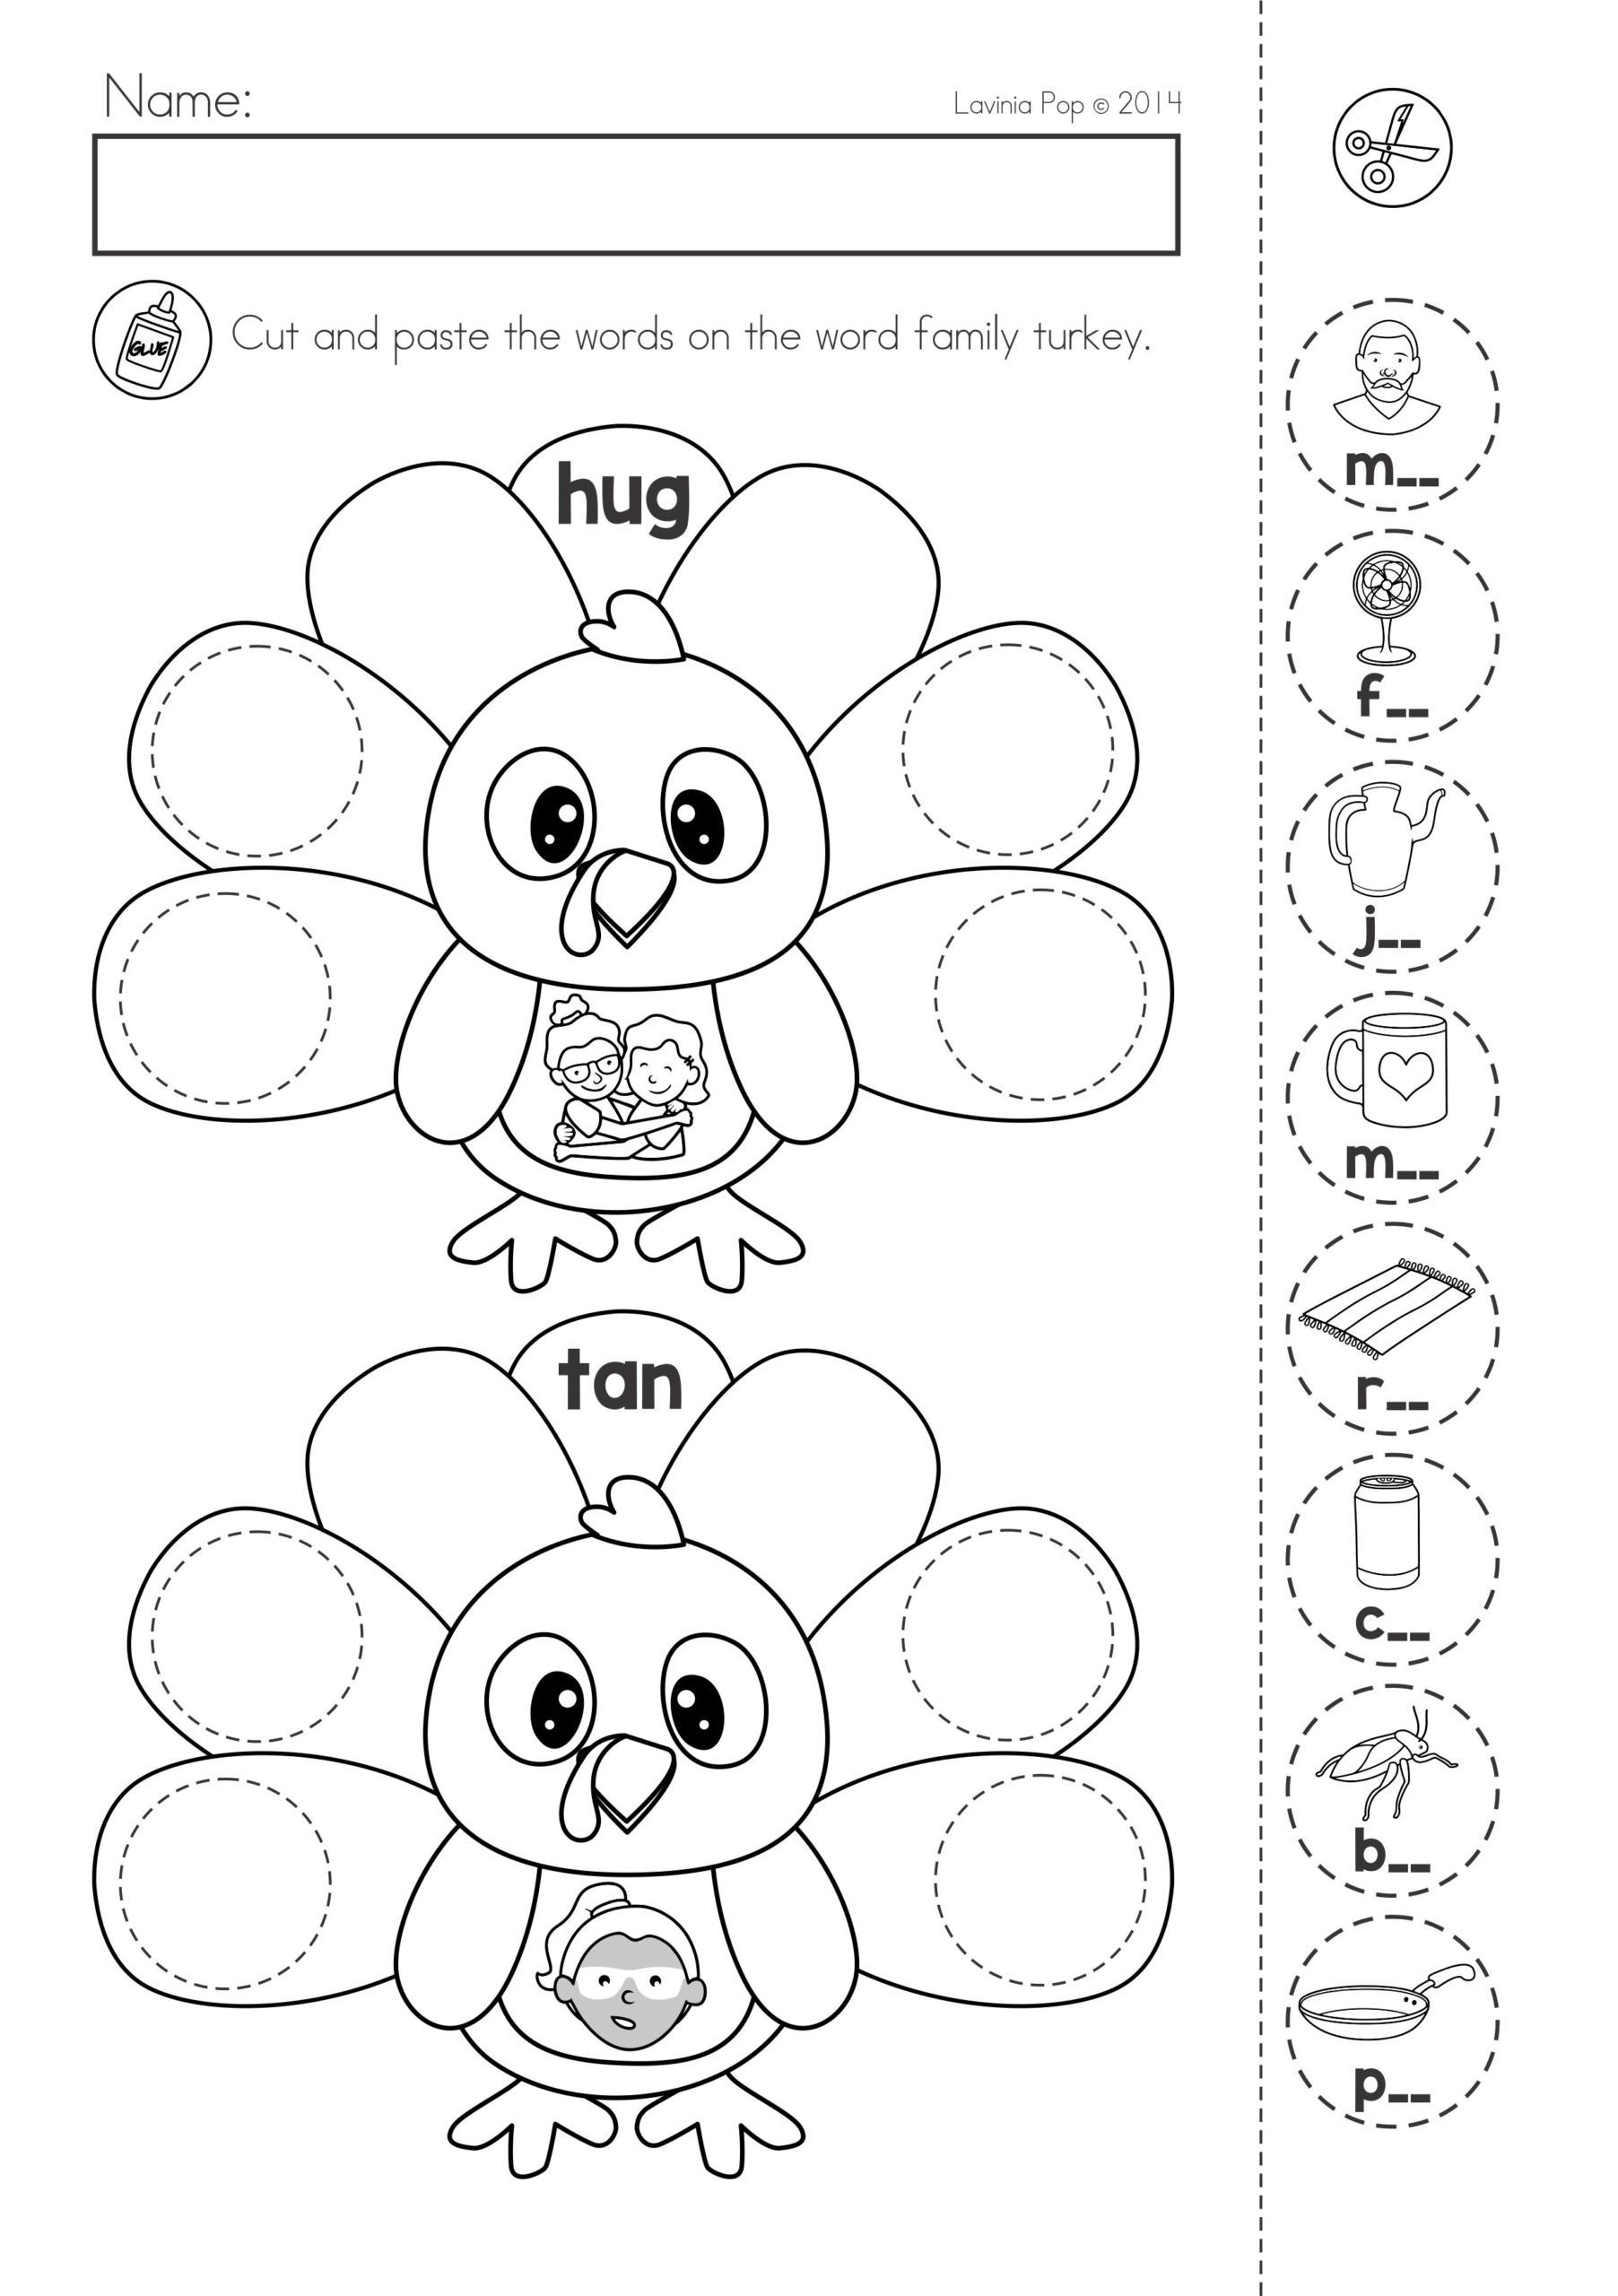 Preschool Sequencing Worksheets Fraction Worksheet Printable Cut and Paste Worksheets